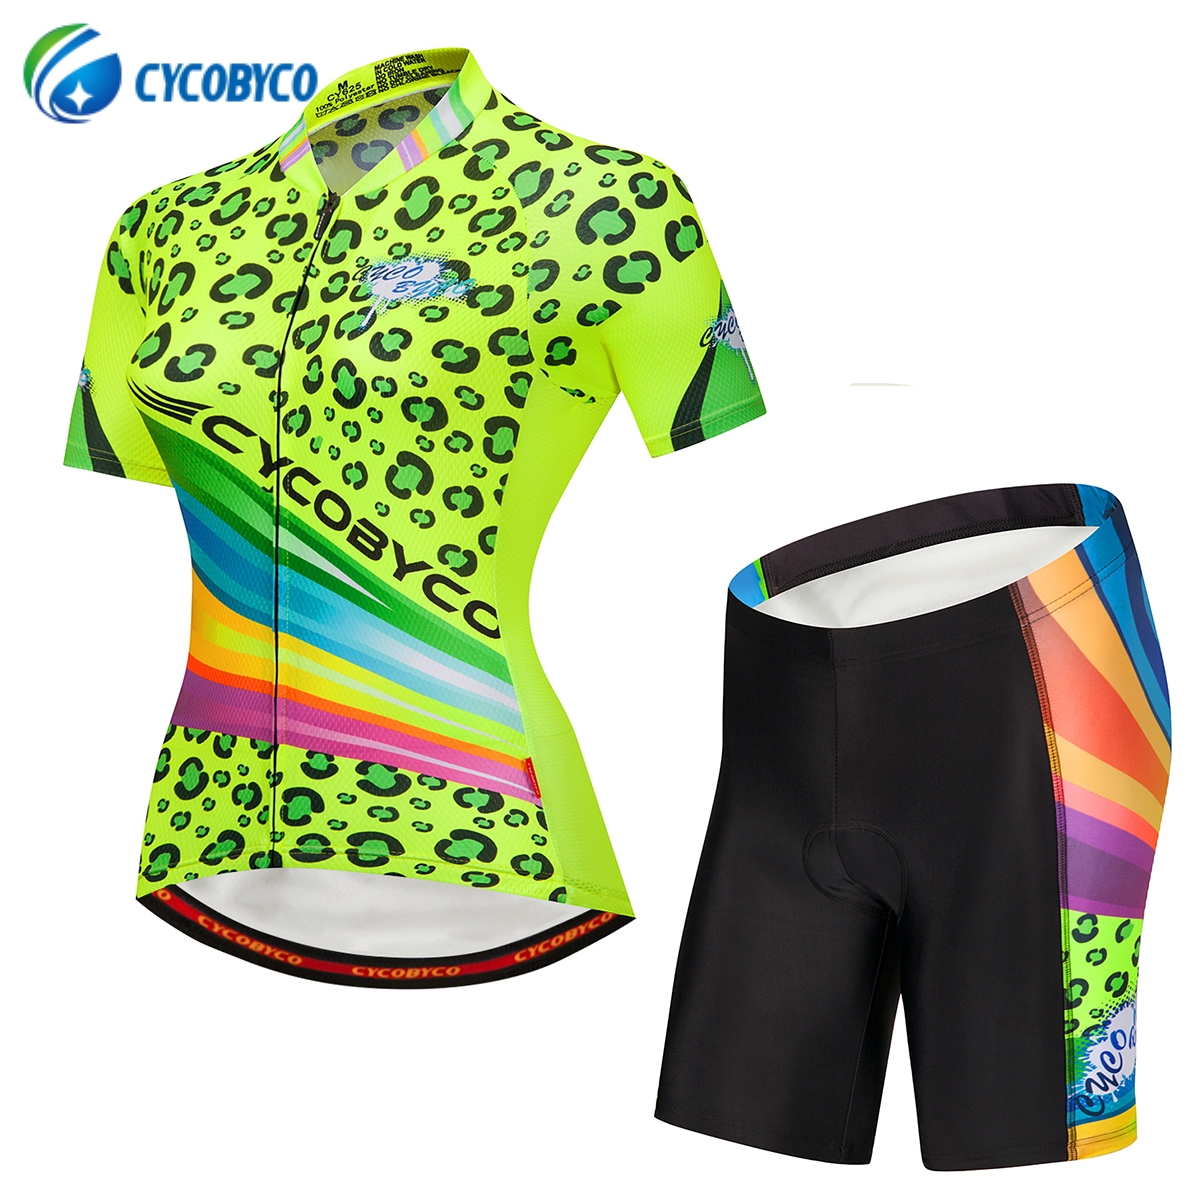 Cycobyco Cycling Jersey Short Sleeve Set Women MTB Bike Clothing Road Bicycle Shorts Padded Pants Maillot Ropa Ciclismo SummerCycobyco Cycling Jersey Short Sleeve Set Women MTB Bike Clothing Road Bicycle Shorts Padded Pants Maillot Ropa Ciclismo Summer